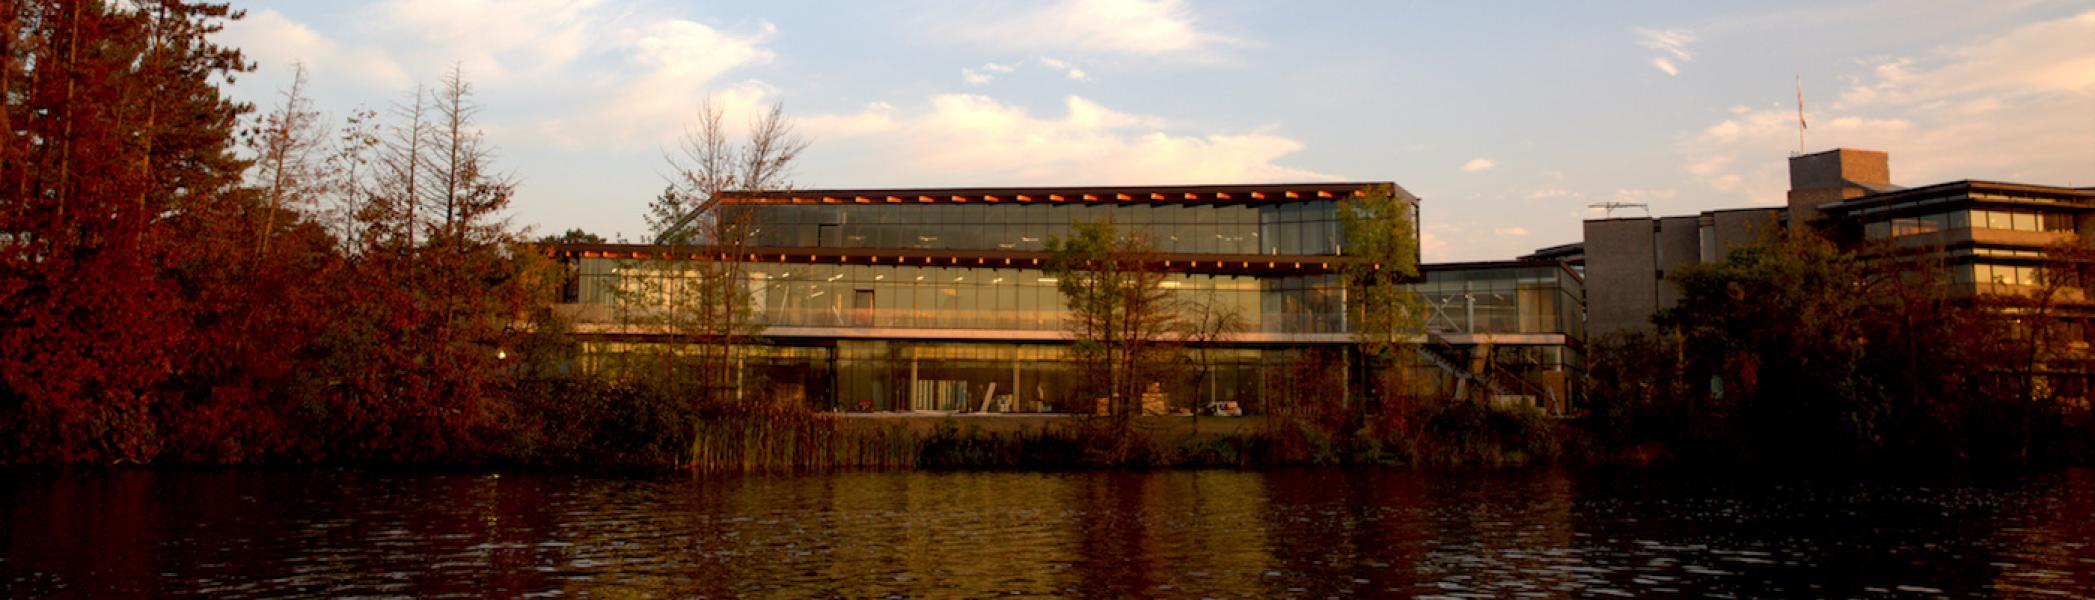 An exterior view of the student center with the river in the foreground